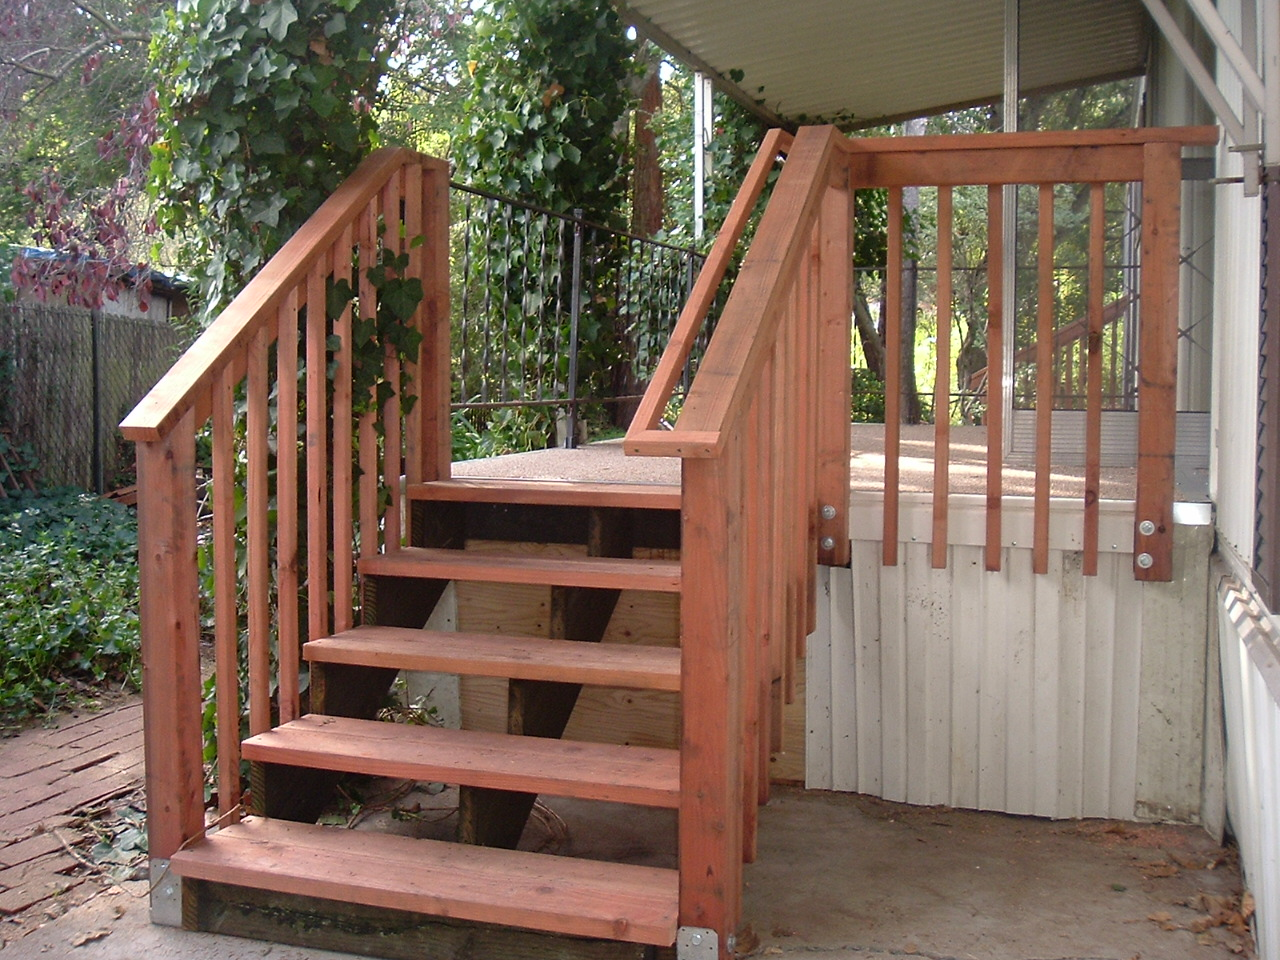 Build Deck Stairs | Exterior Stair Stringers | How to Build Cascading Deck Stairs